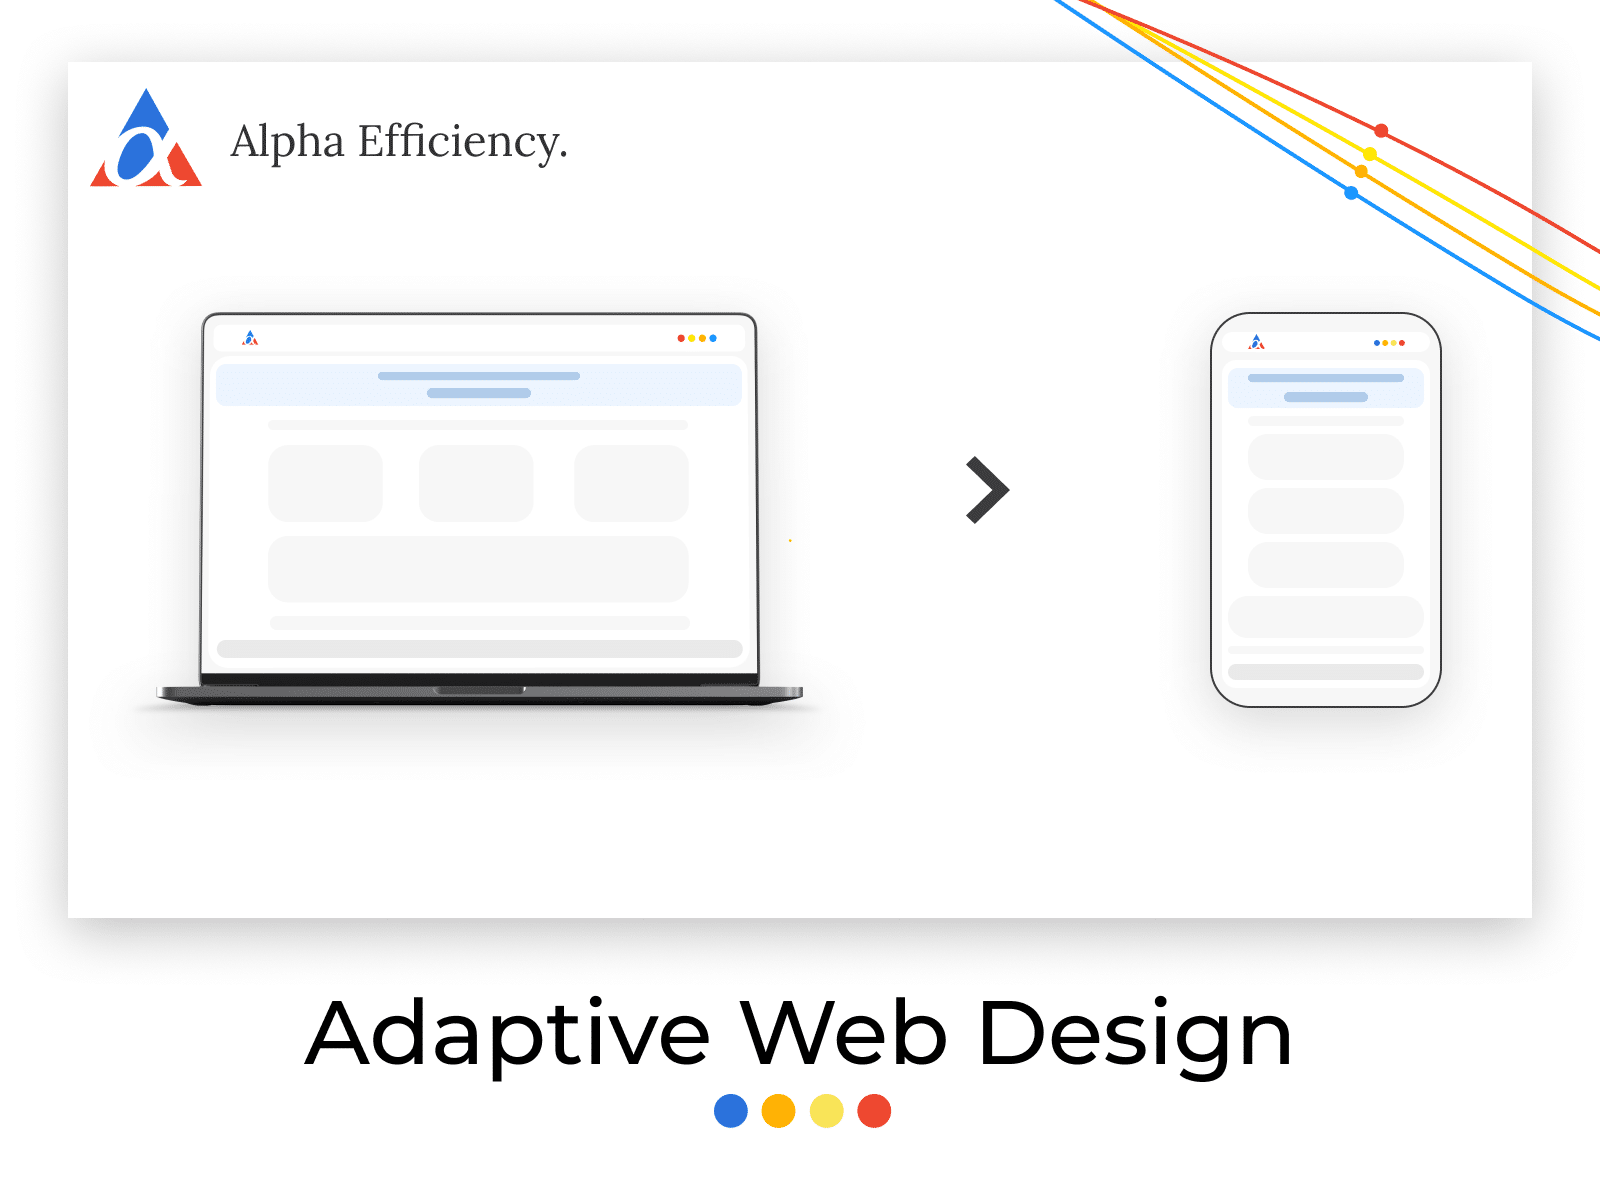 What is Adaptive Web Design And How Does it Differ From Responsive